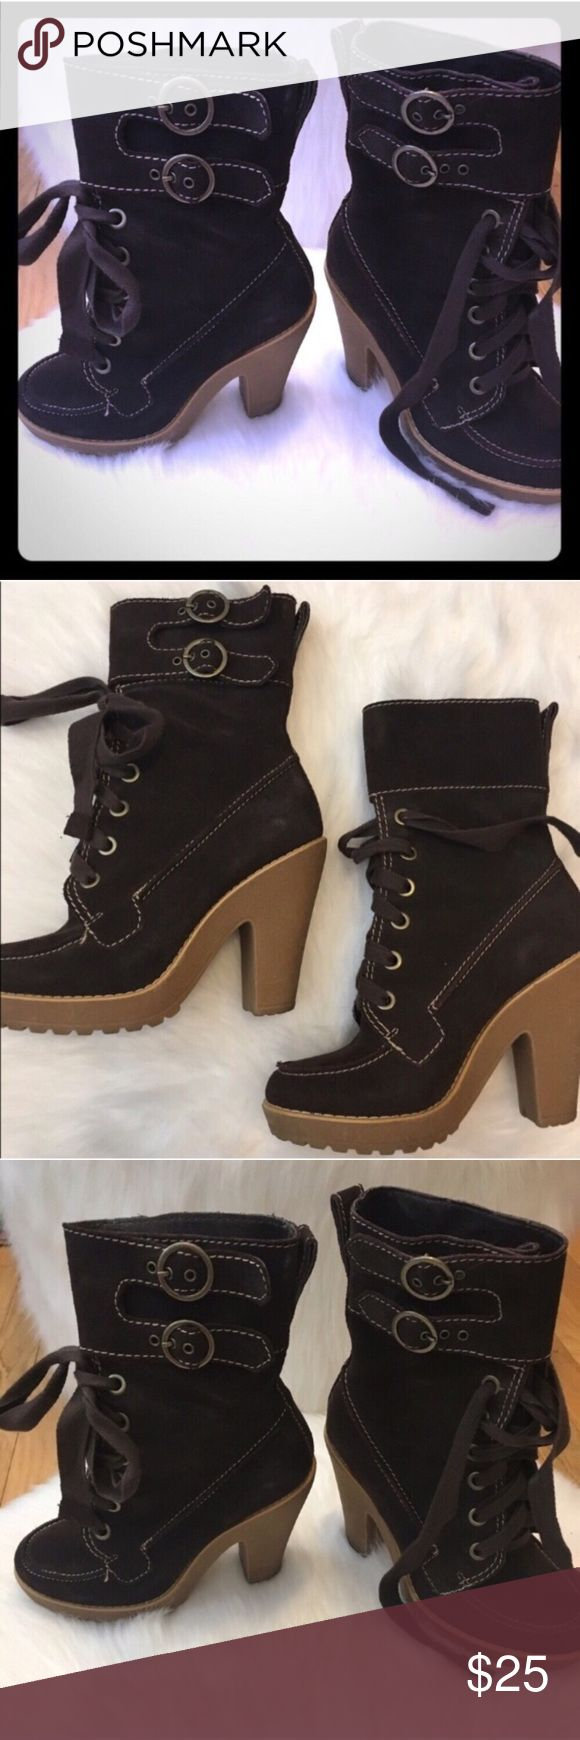 🖤Chocolate High Heeled Buckled Boots-Size 6 Beautiful Chocolate Suede Buckled High Heeled Boots. Purchased at DSW Shoe Warehouse. Size 6.              *Stop by my closet for more great items to bundle!* *Submit respectable offers using the private offer feature.* ⬇️ * 🚫 I do not discuss pricing in the comments section. * 🚫Trades. * ✔️10% off 3 or More Bundle! * ✔️Respectable Offers Welcome!  * ✔️Reasonable Counters Considered! DSW Shoes